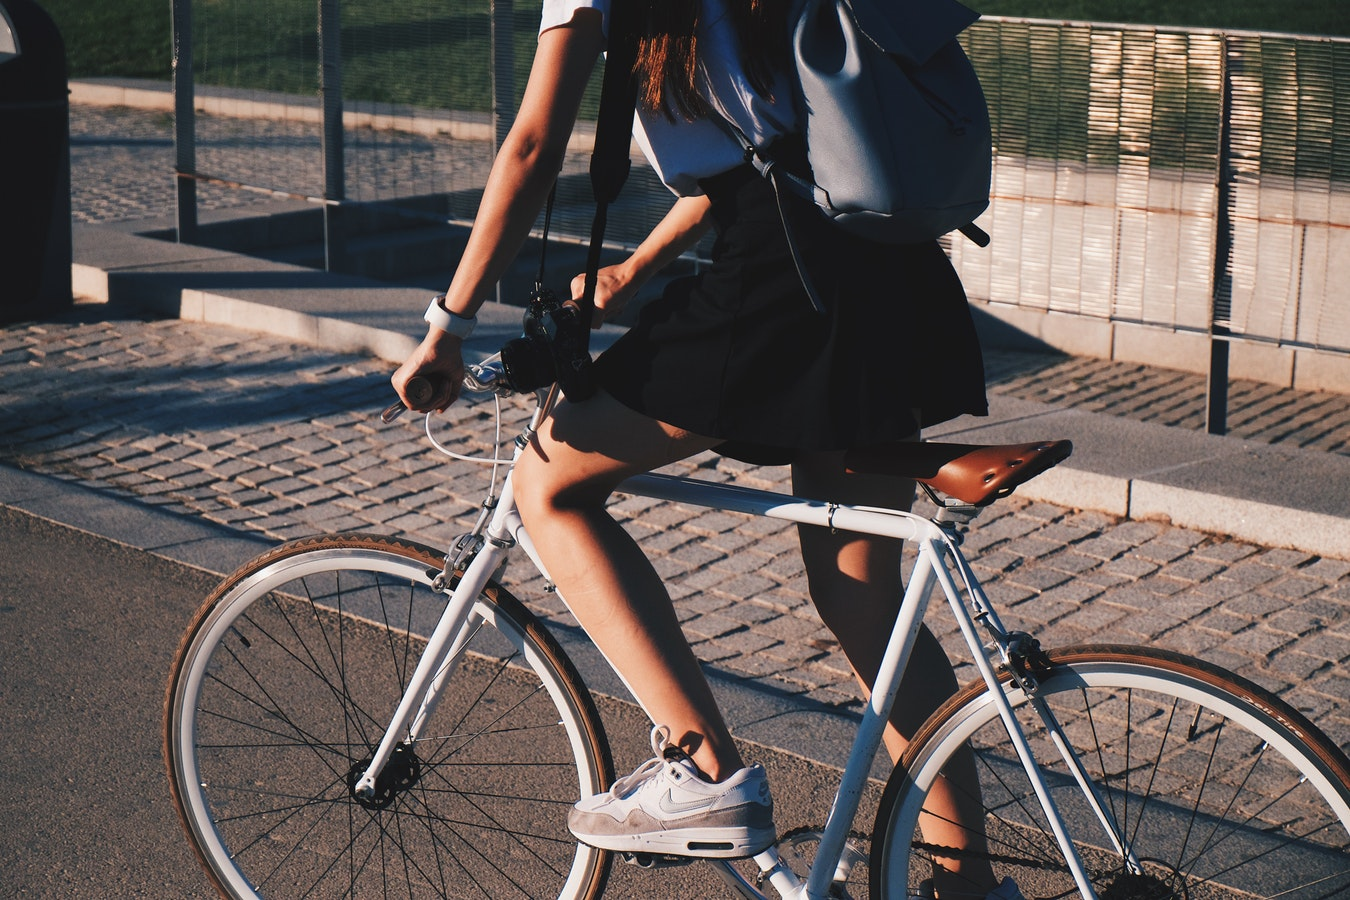 Right-Hand Turn Bicycle Accidents: What You Need to Know